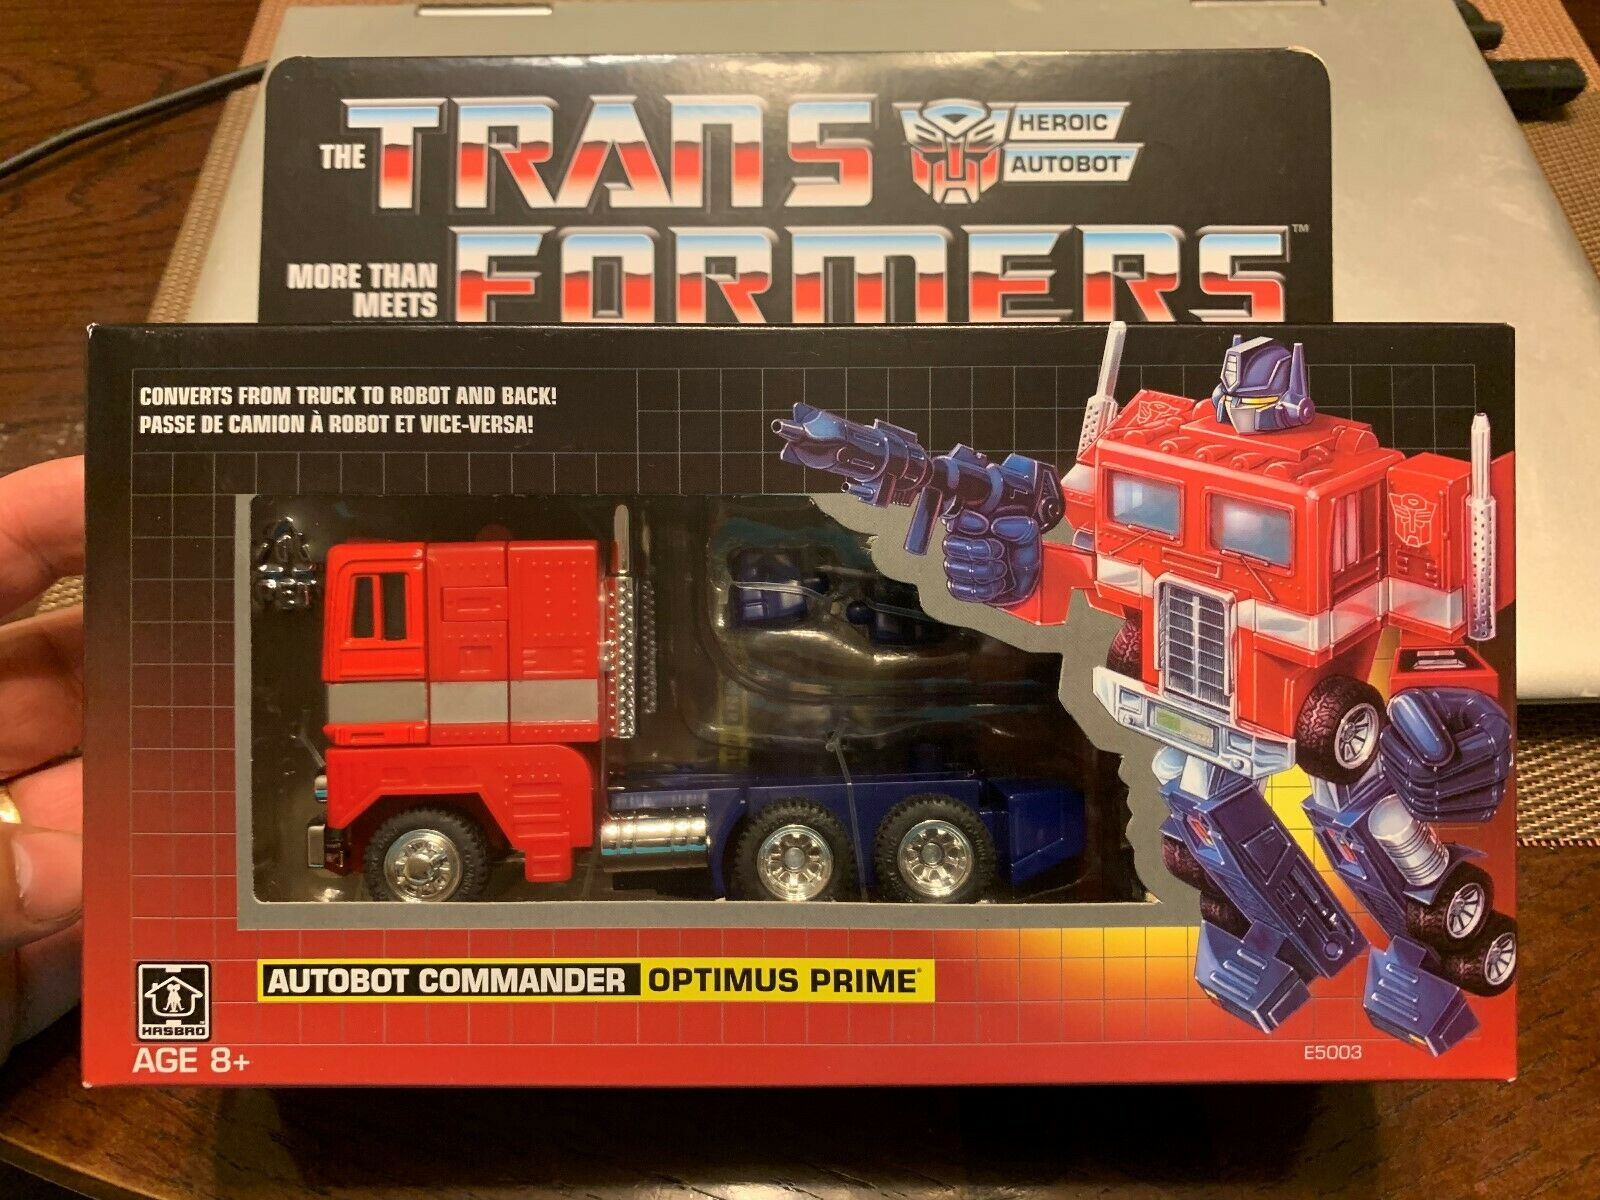 Transformers Commander Optimus Prime - G1 Walmart Exclusive, 2018 LQQK NEW